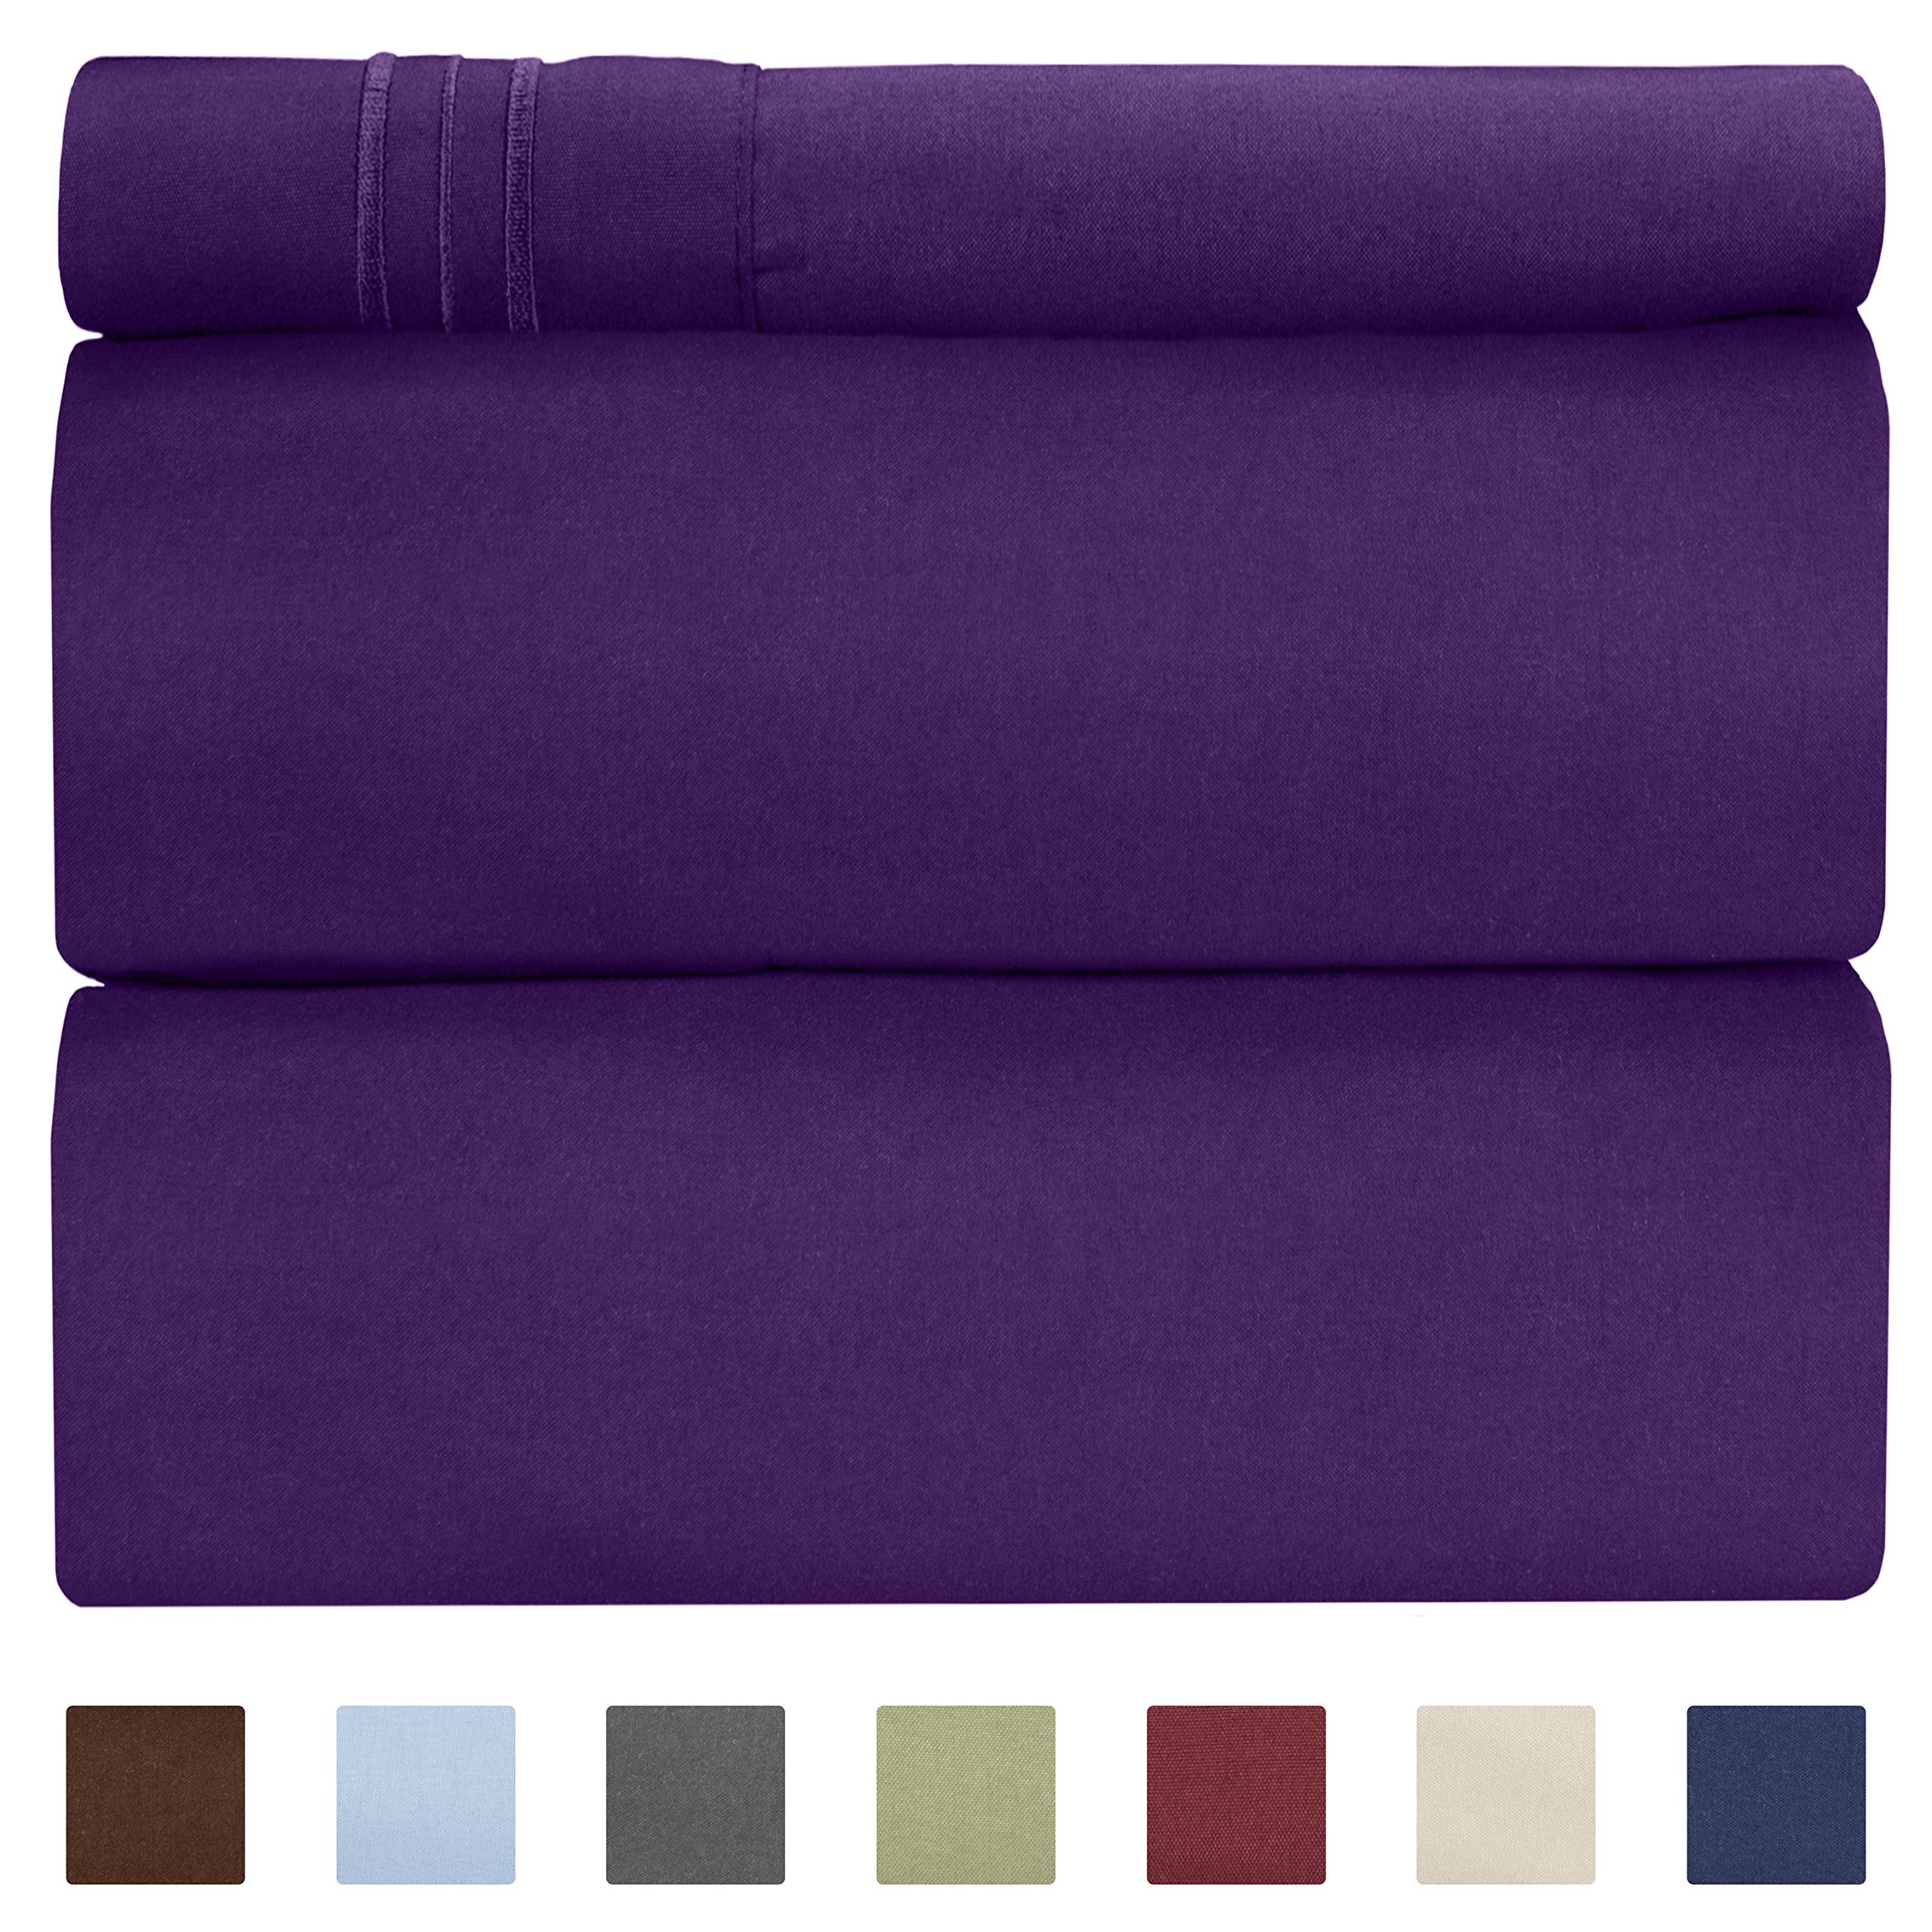 CGK Unlimited Twin XL Sheet Set - 3 Piece - Fits College Dorm Rooms - Hotel Luxury Bed Sheets - Extra Soft - Deep Pockets - Easy Fit - Breathable & Cooling - Purple Bed Sheets - Twins